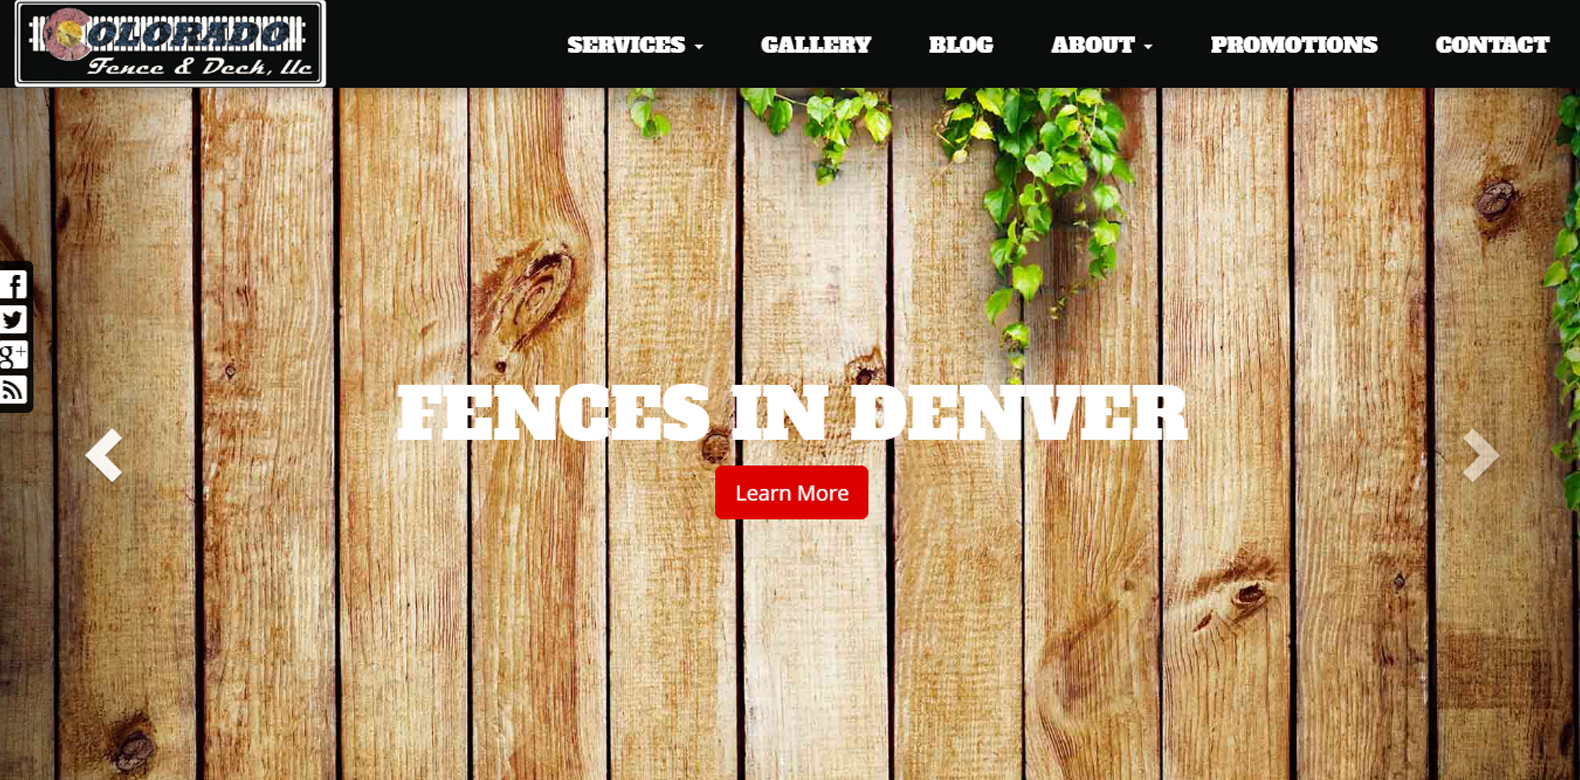 New Website Launched: Colorado Fence & Deck